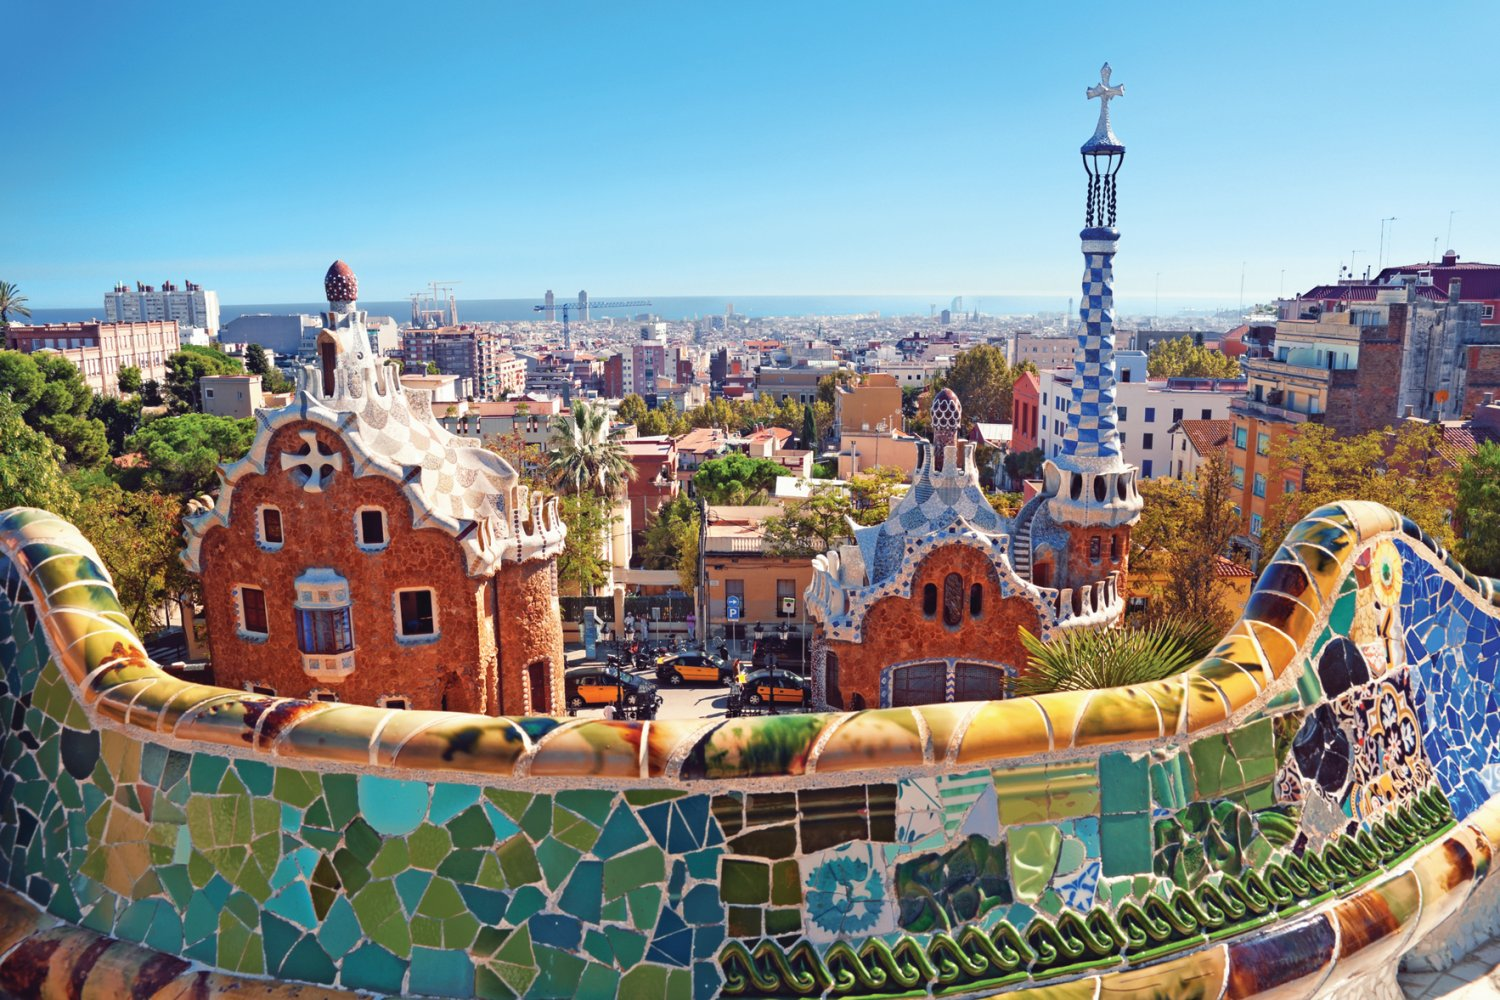 Historical sites in Spain, Park Guell, Gaudi, Barcelona